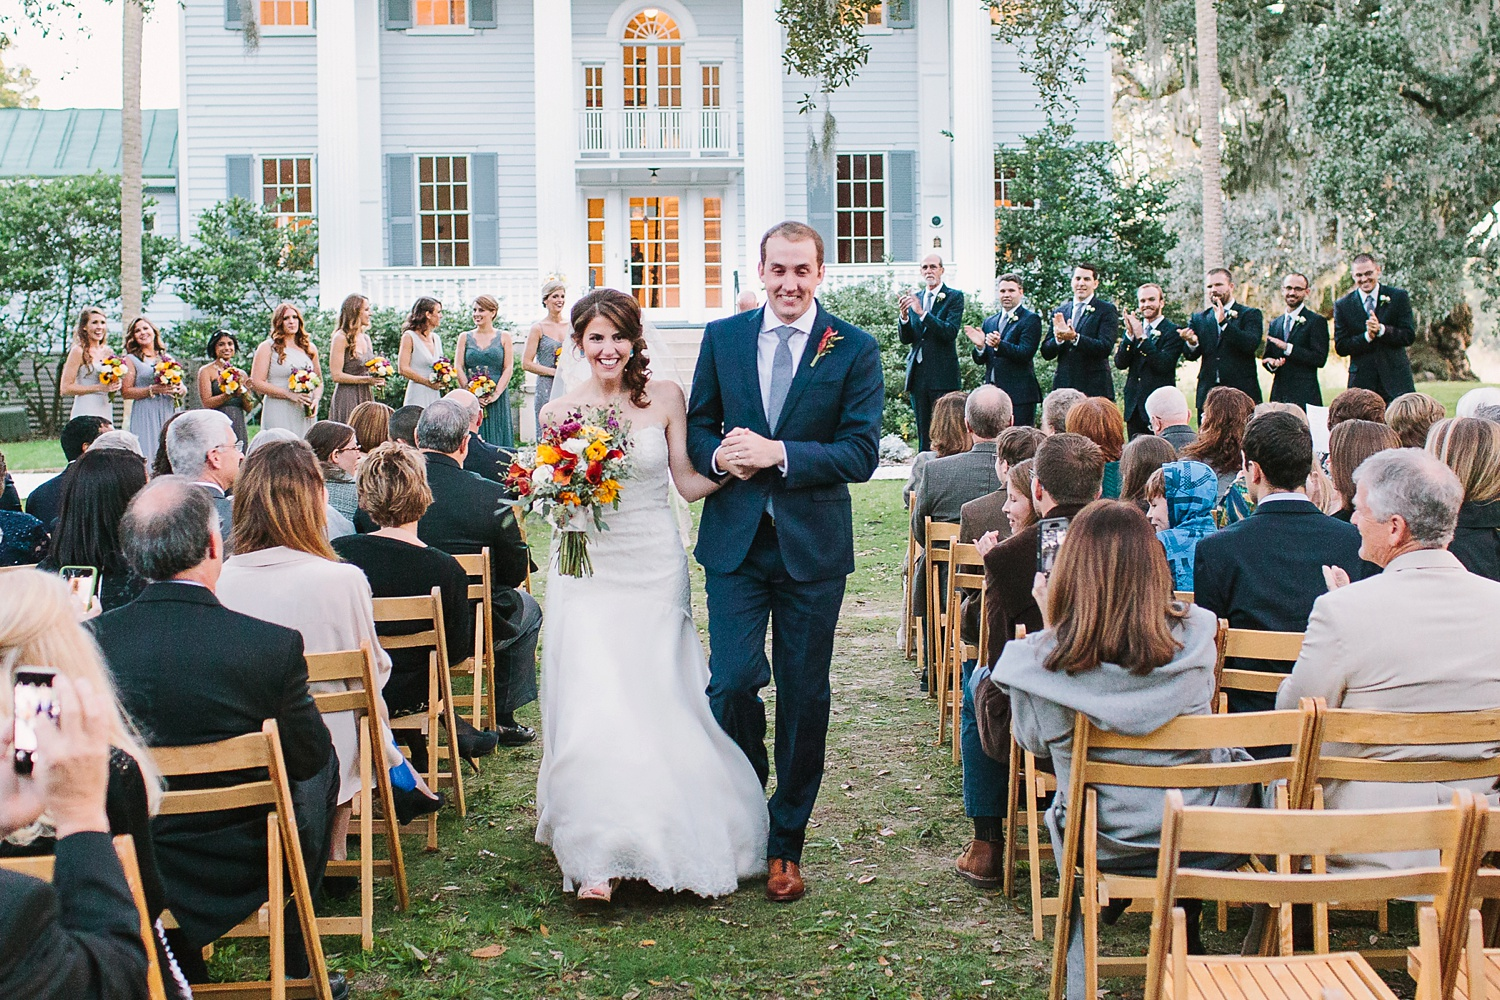 Lindsey_A_Miller_photography_charleston_mcleod_plantation_wedding_row_of_oaks_southern_classic_fall_spanish_moss_historic_home_065.jpg